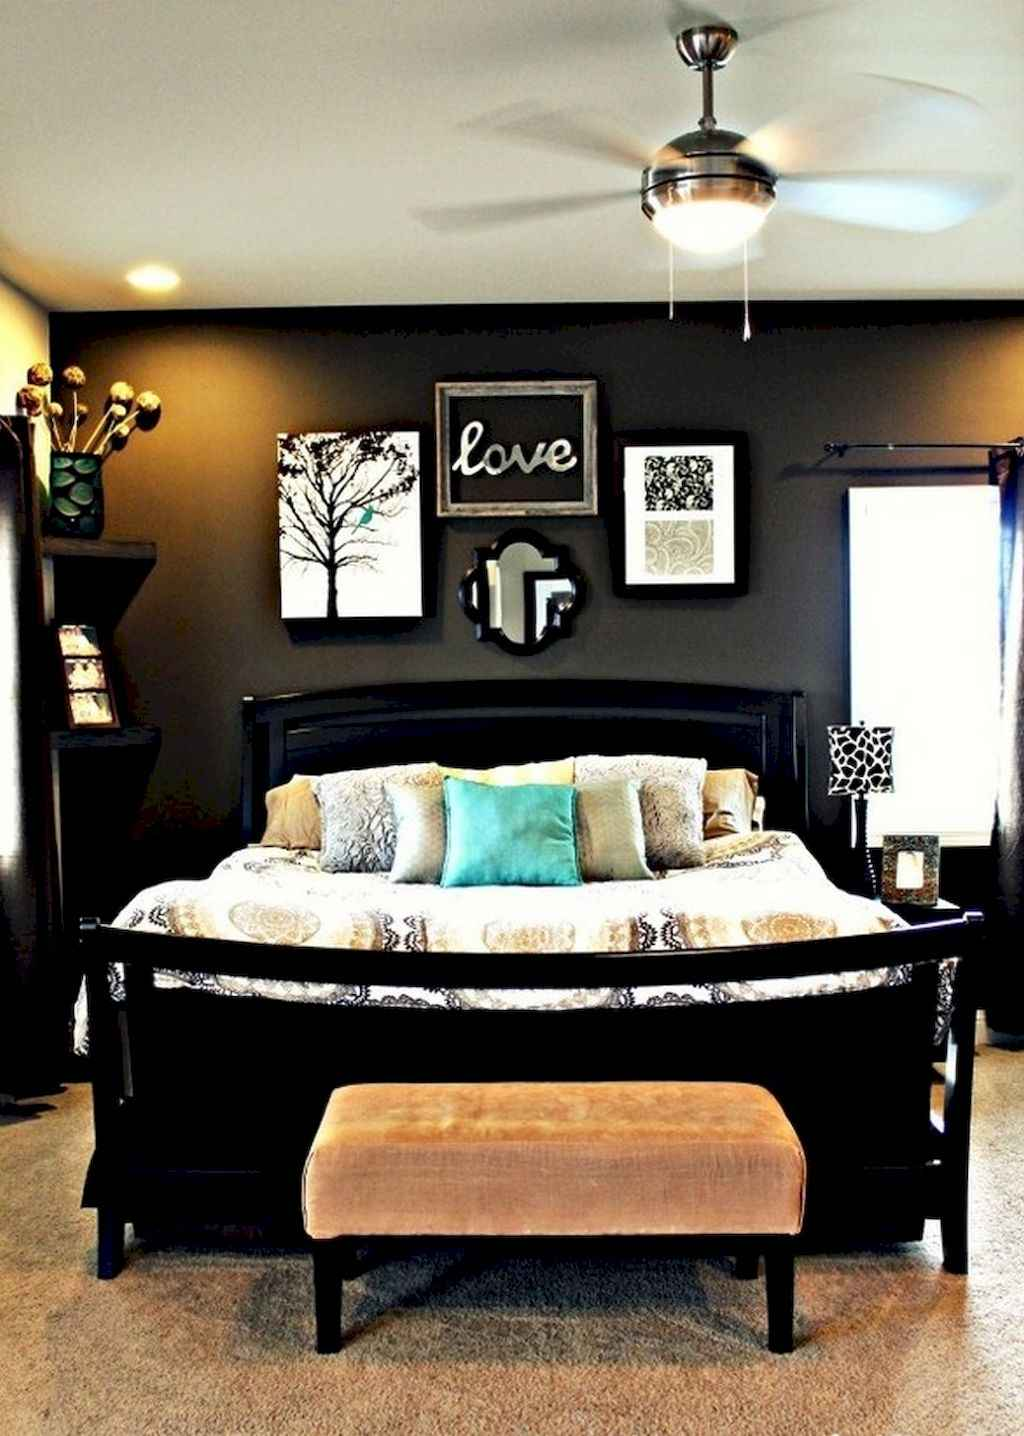 Couples first apartment decorating ideas (42)